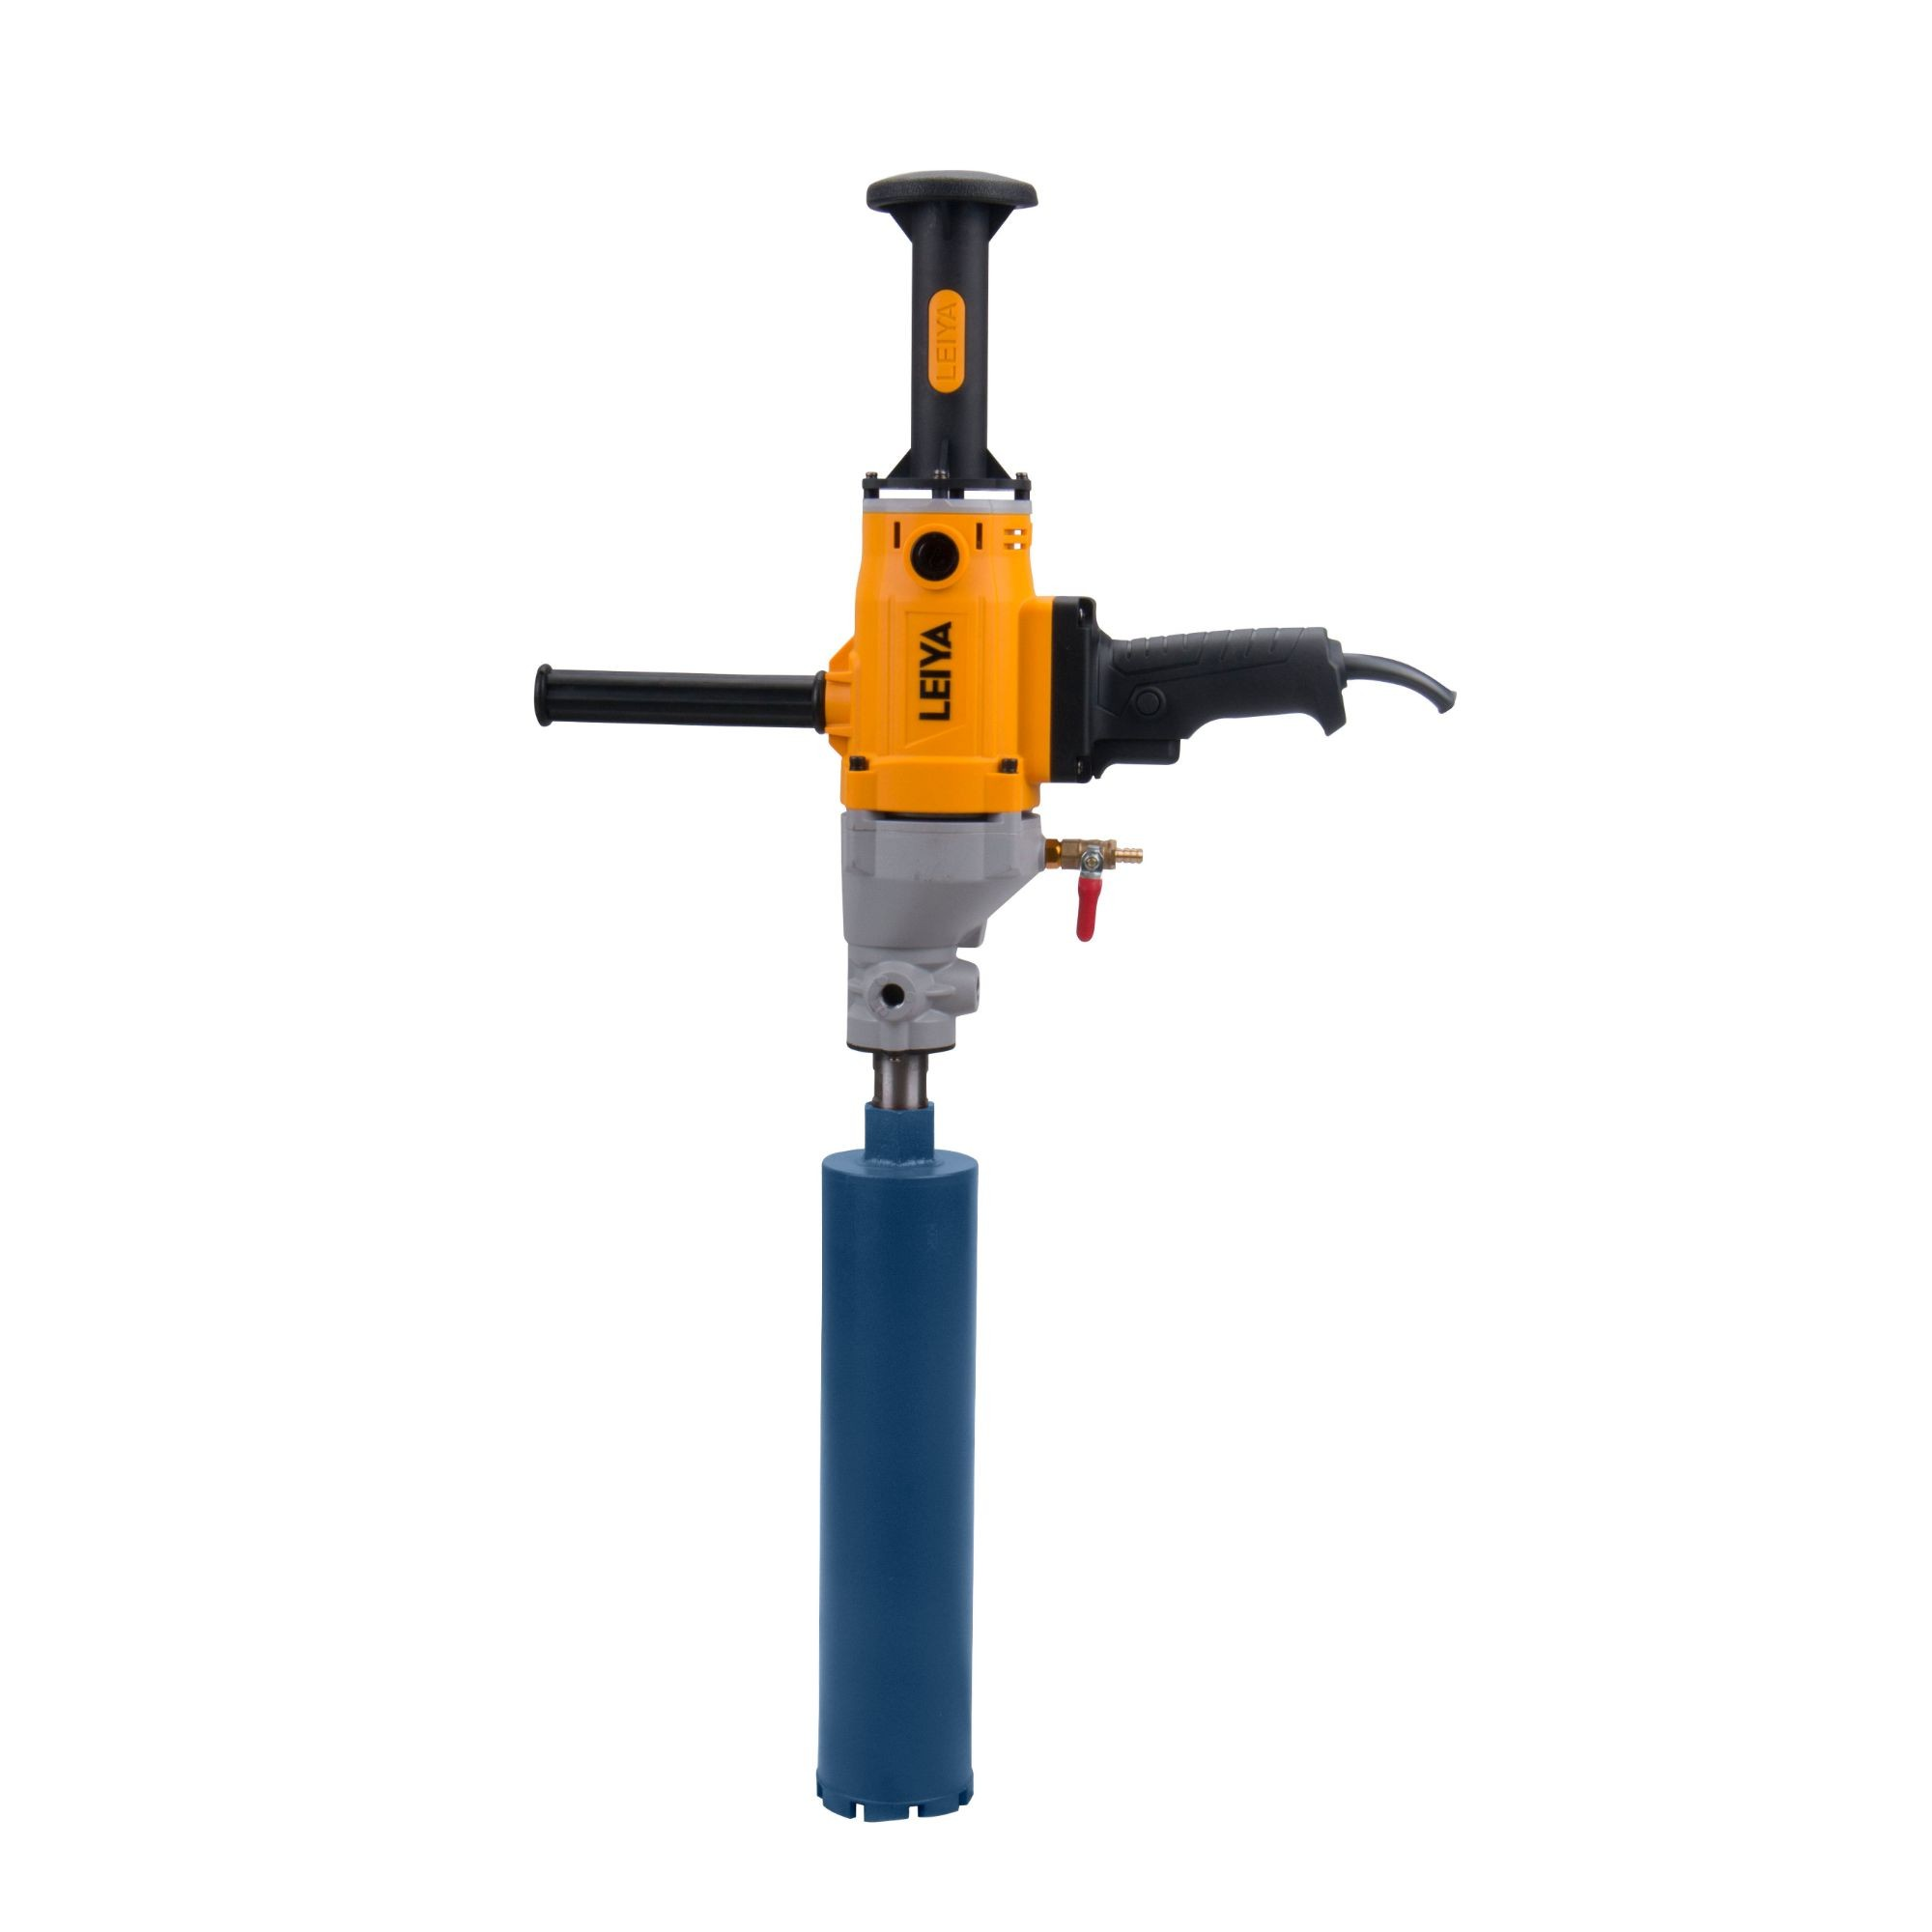 Drilling Hole Size 120mm 1700w Concrete Diamond Core Drill LY-6155